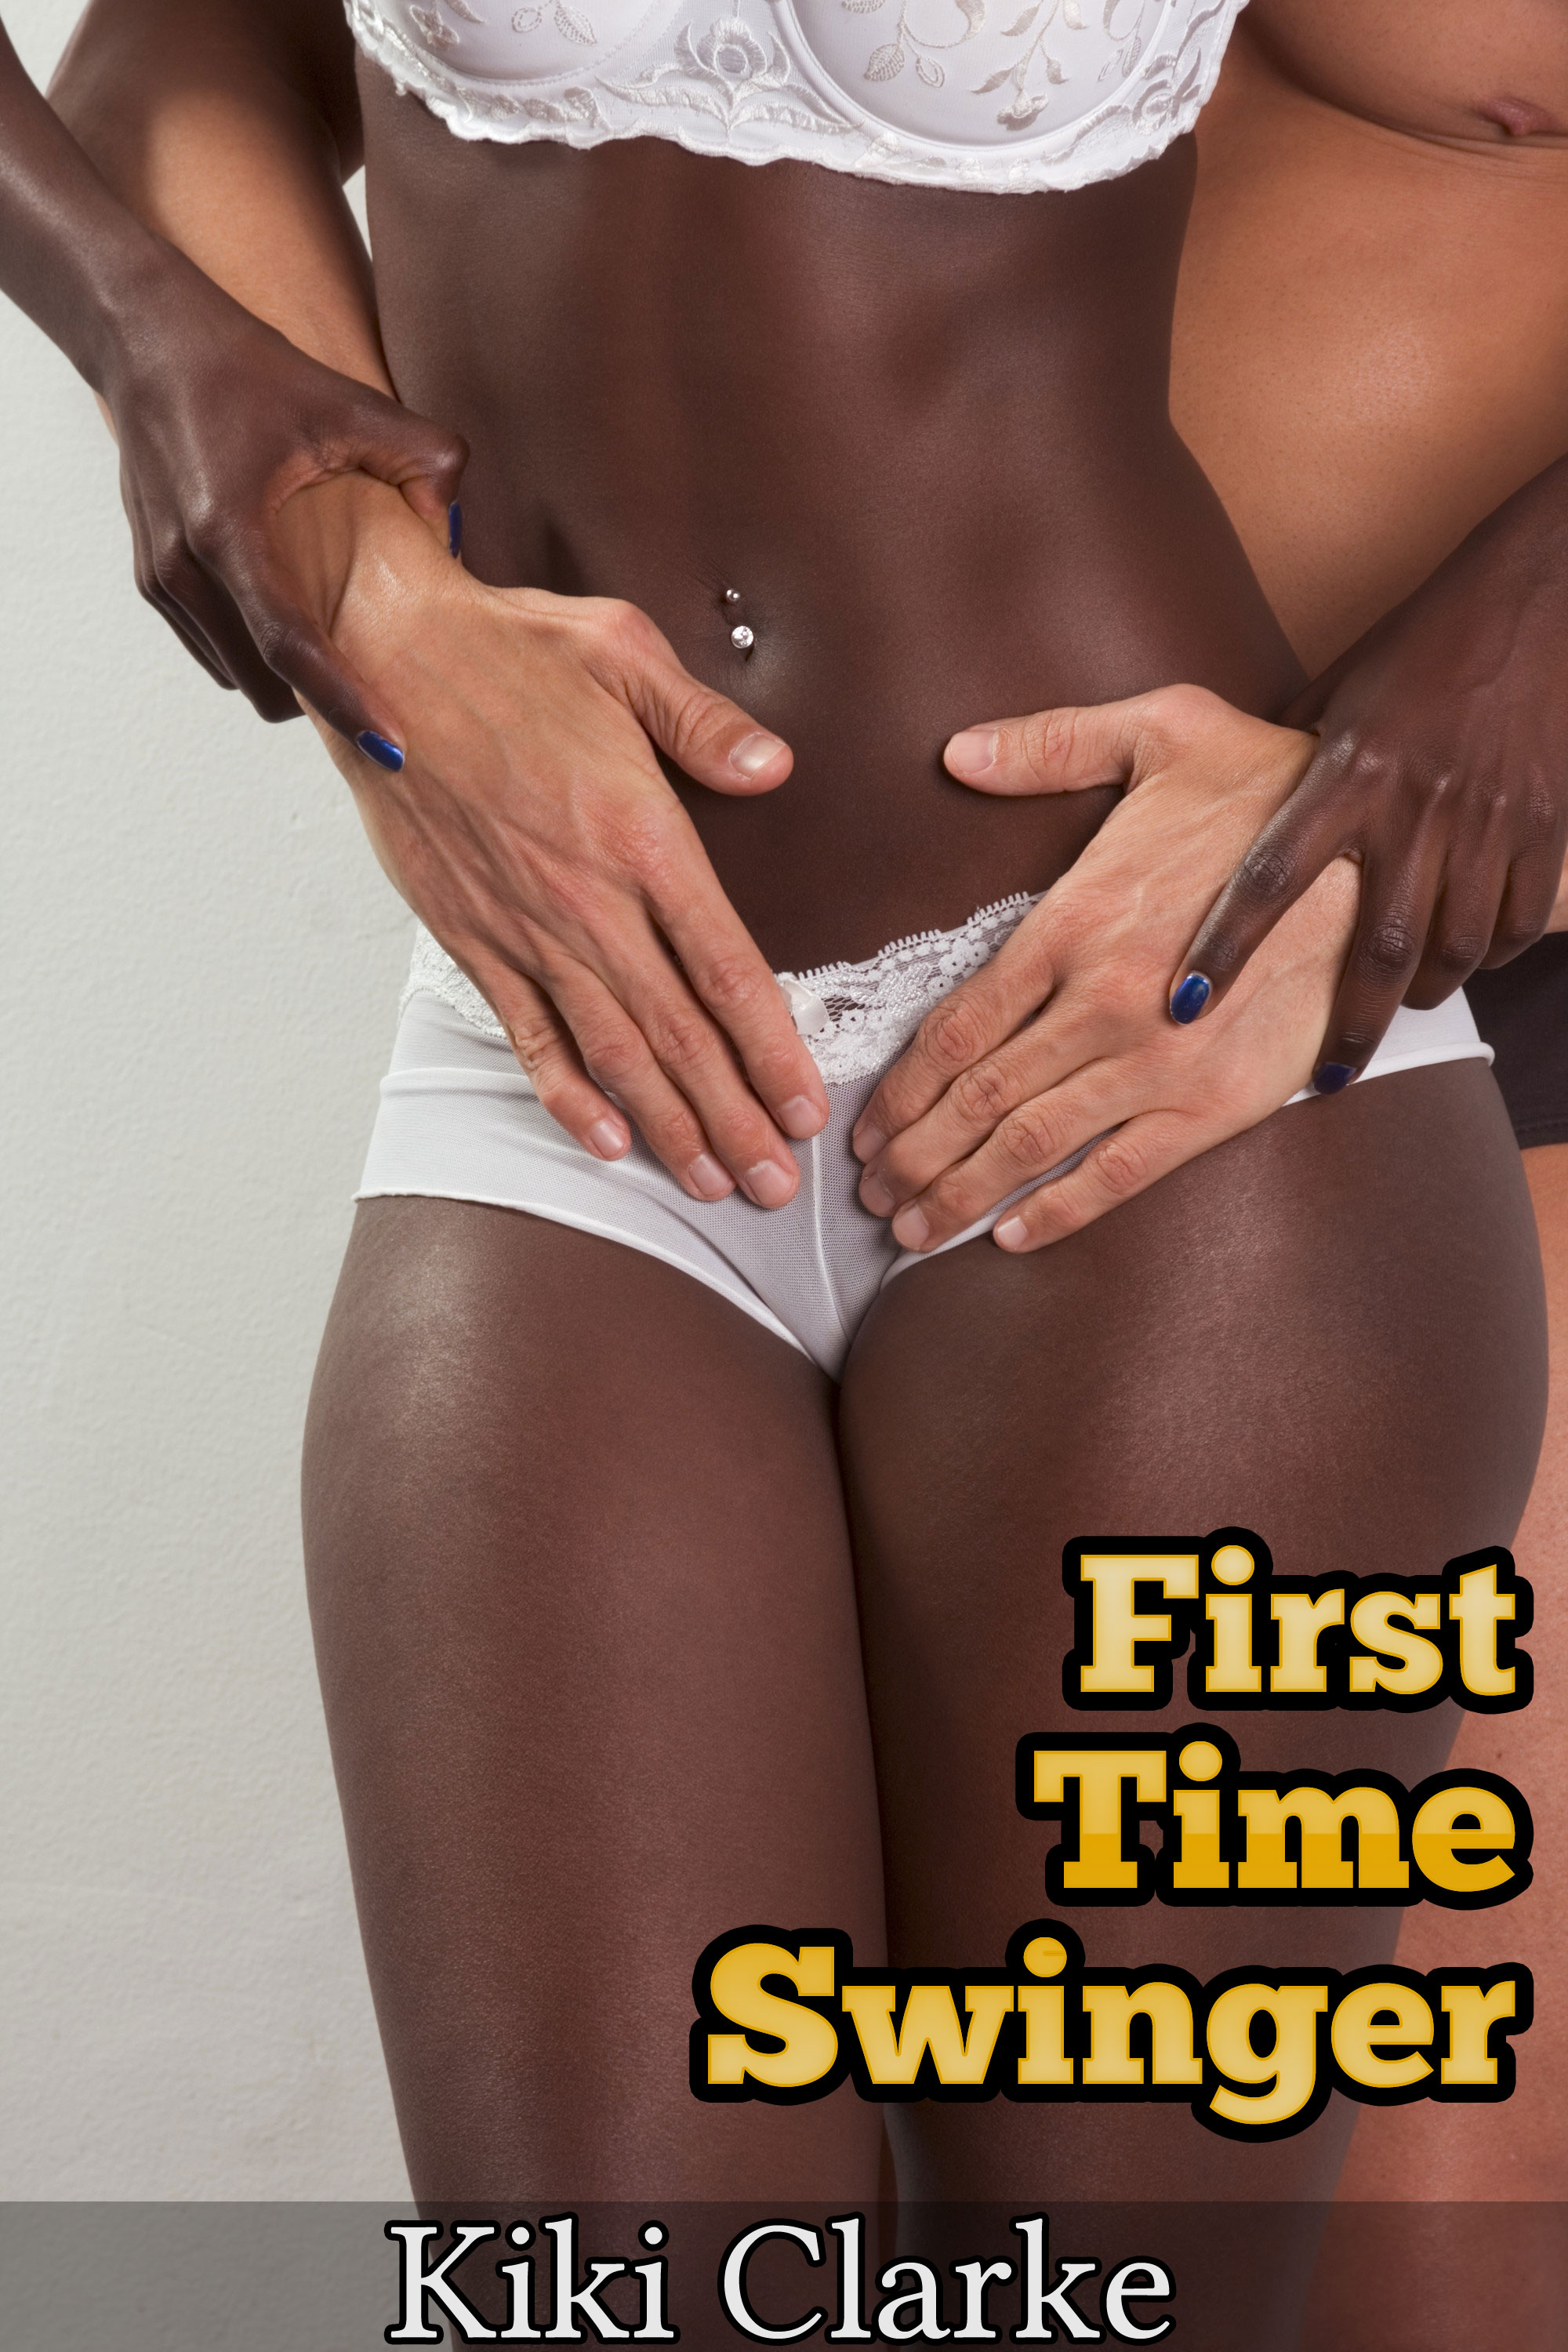 Erotic short stories of interracial sex